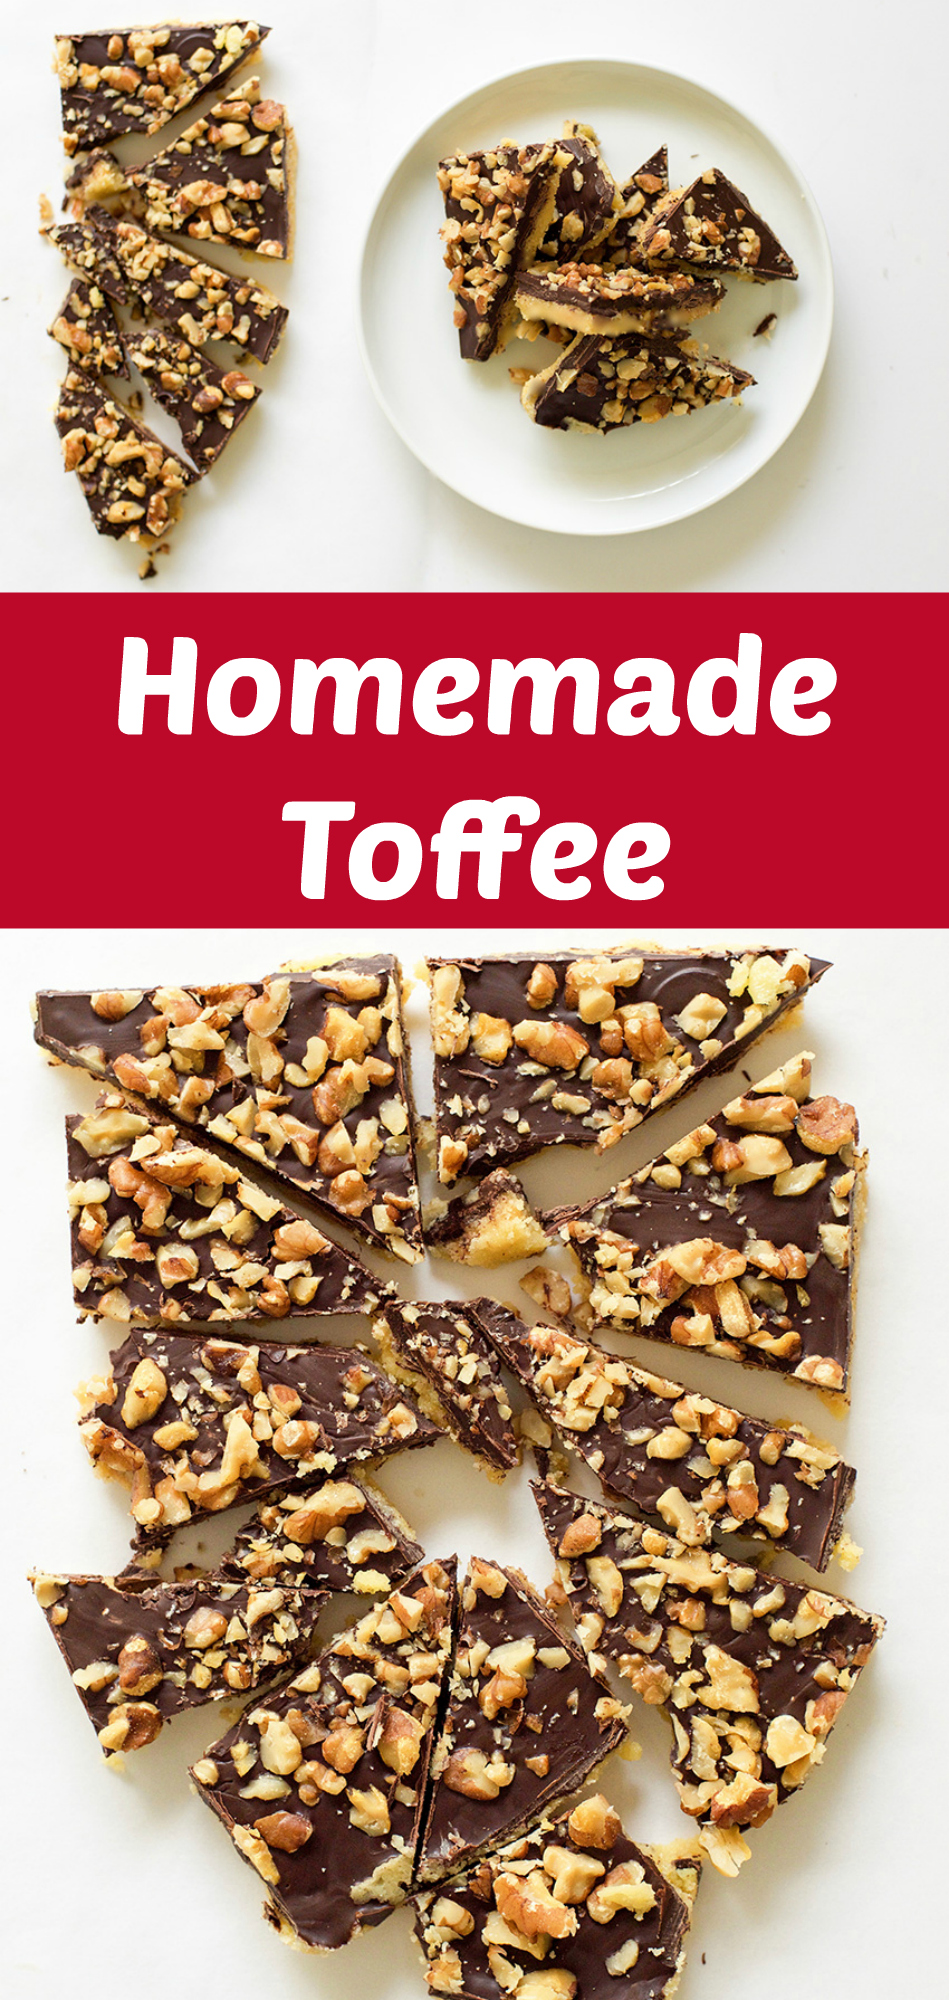 Make Homemade Toffee